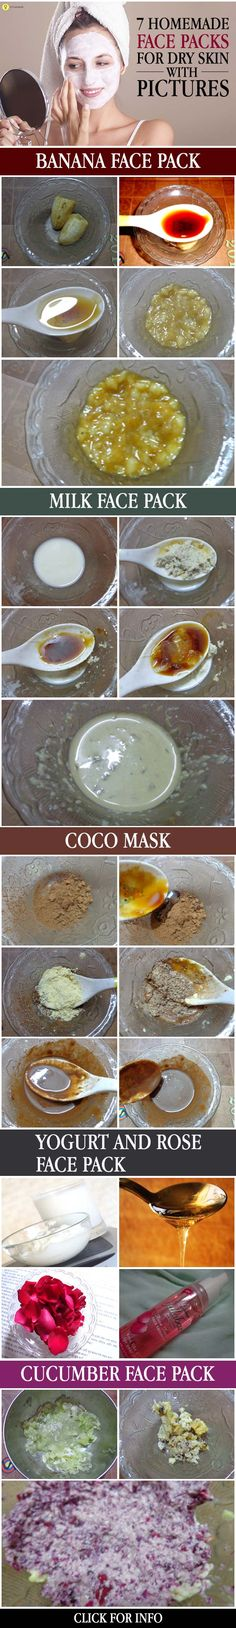 In addition, face packs for dry skin will help improve the condition of the skin, while locking in moisture. It would be ideal to choose homemade ...